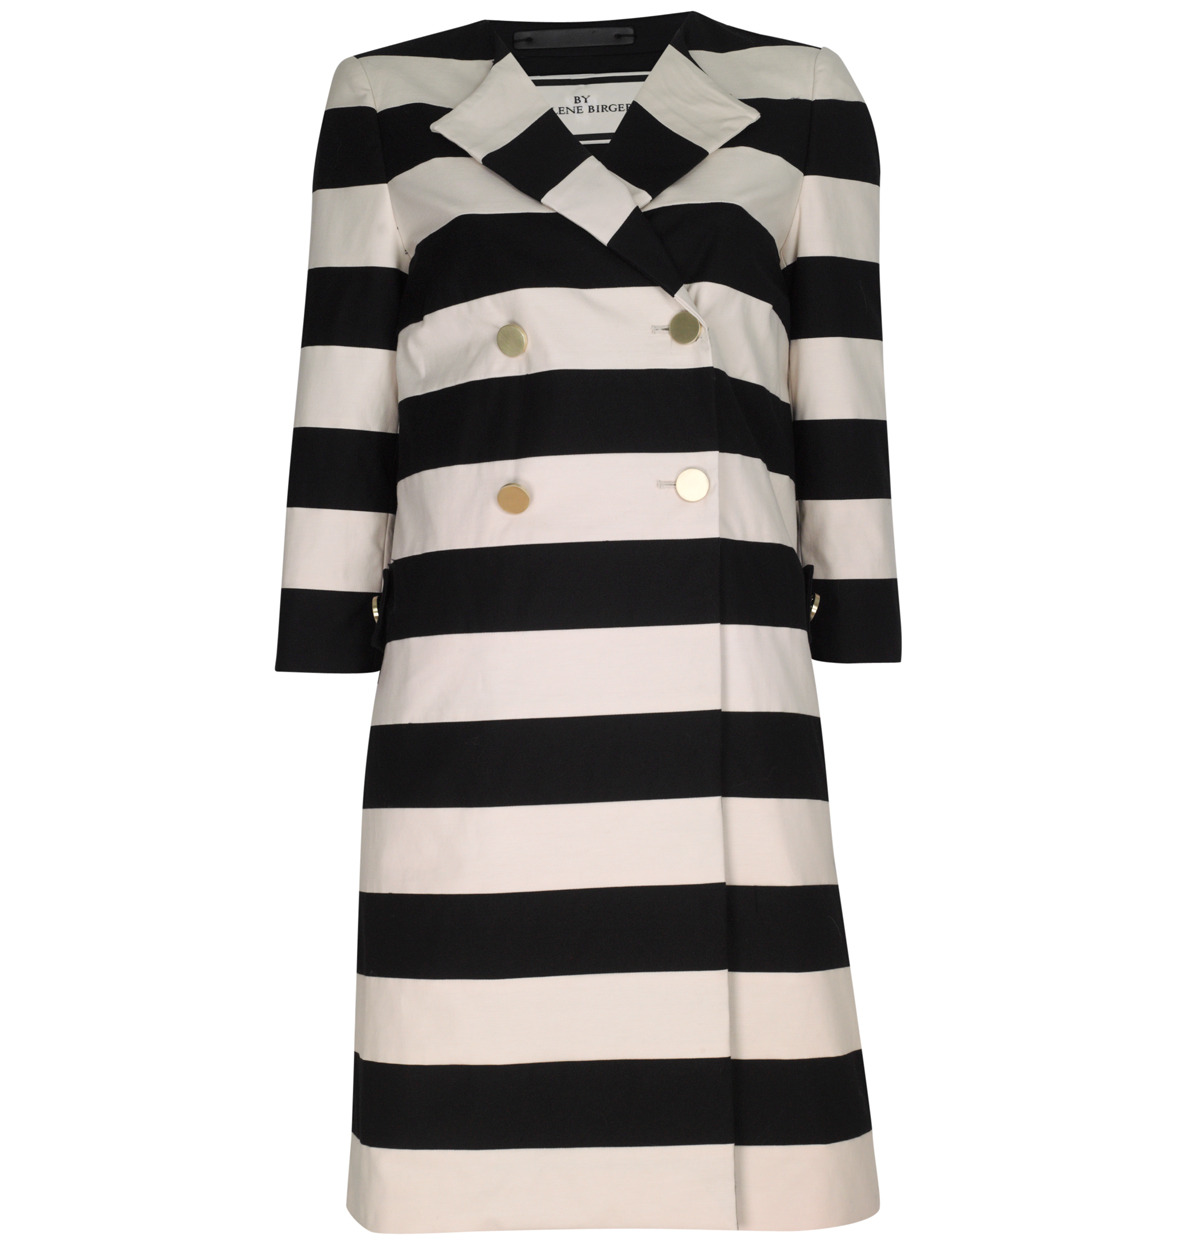 Salerna Striped Cotton Blend Coat - pattern: horizontal stripes, heavily patterned, vertical stripes, monochrome, patterned/print; bust detail: added detail/embellishment at bust; style: double breasted; length: on the knee; collar: standard lapel/rever collar; predominant colour: black; occasions: casual, evening, work, occasion; fit: straight cut (boxy); trends: prints; fibres: cotton - mix; material texture: jersey; hip detail: contrast fabric/print detail at hip; waist detail: fitted waist, belted waist/tie at waist/drawstring; back detail: embellishment at back; sleeve length: 3/4 length; sleeve style: standard; collar break: medium; pattern type: fabric; pattern size: big &amp; busy; texture group: jersey - stretchy/drapey